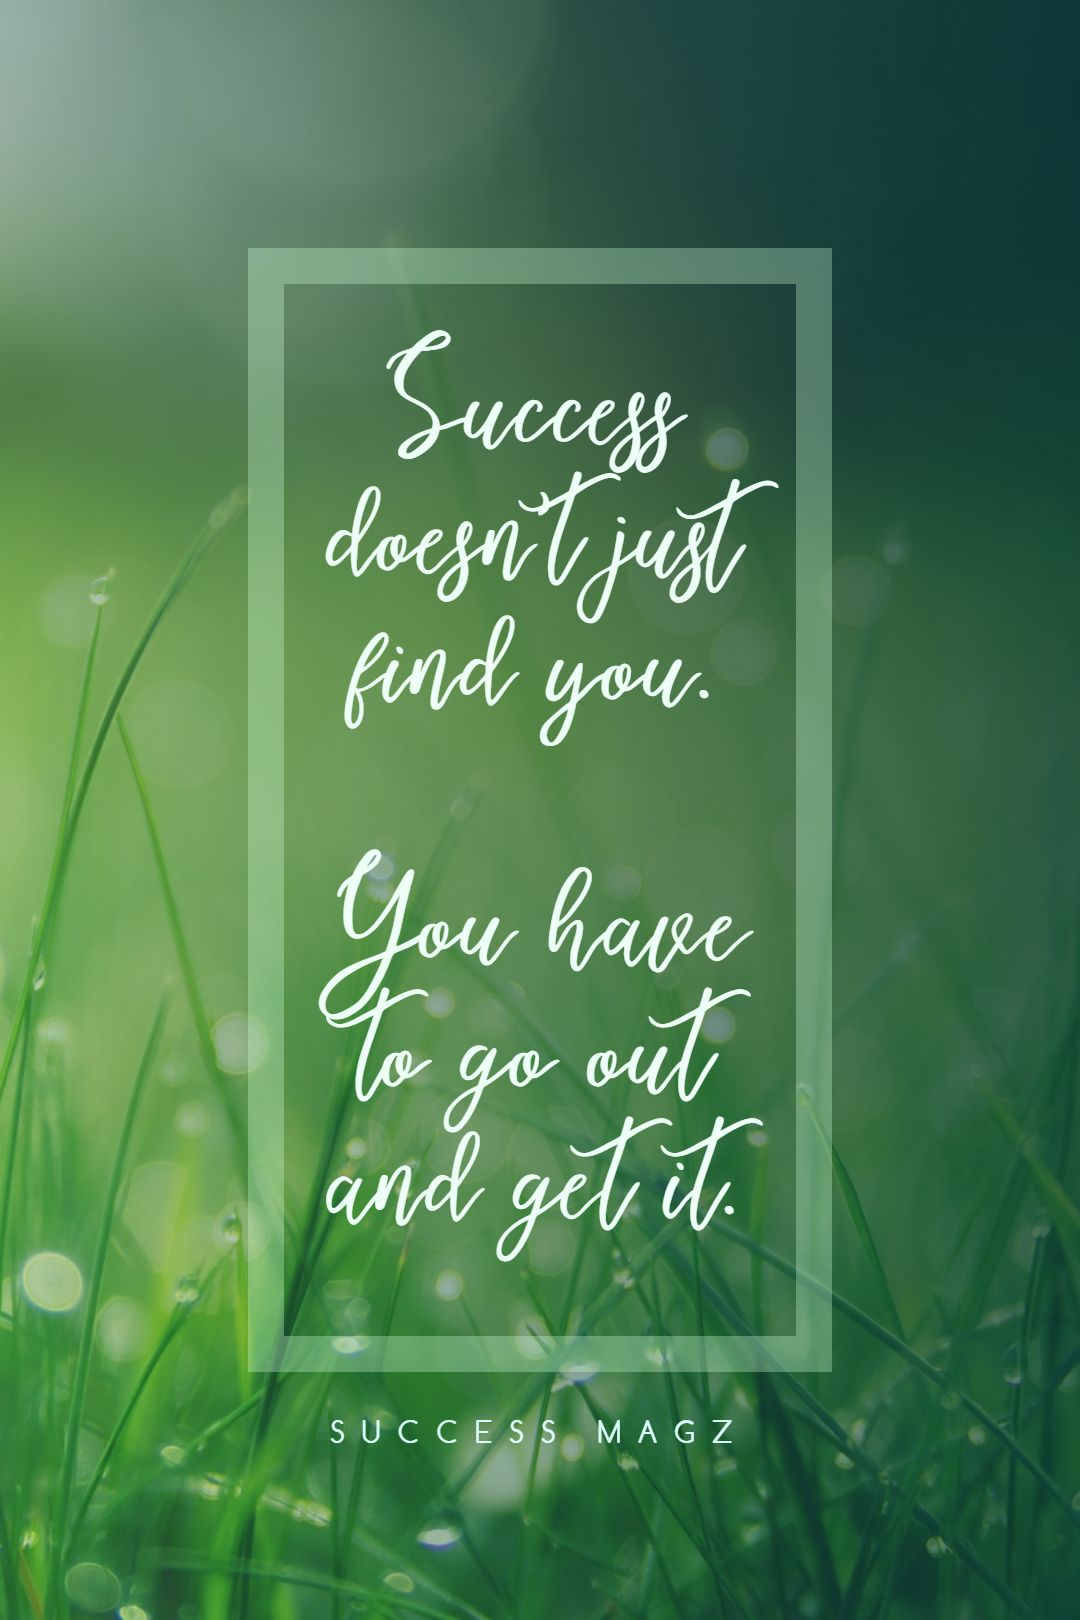 Quotes image of Success doesn't just find you. You have to go out and get it.